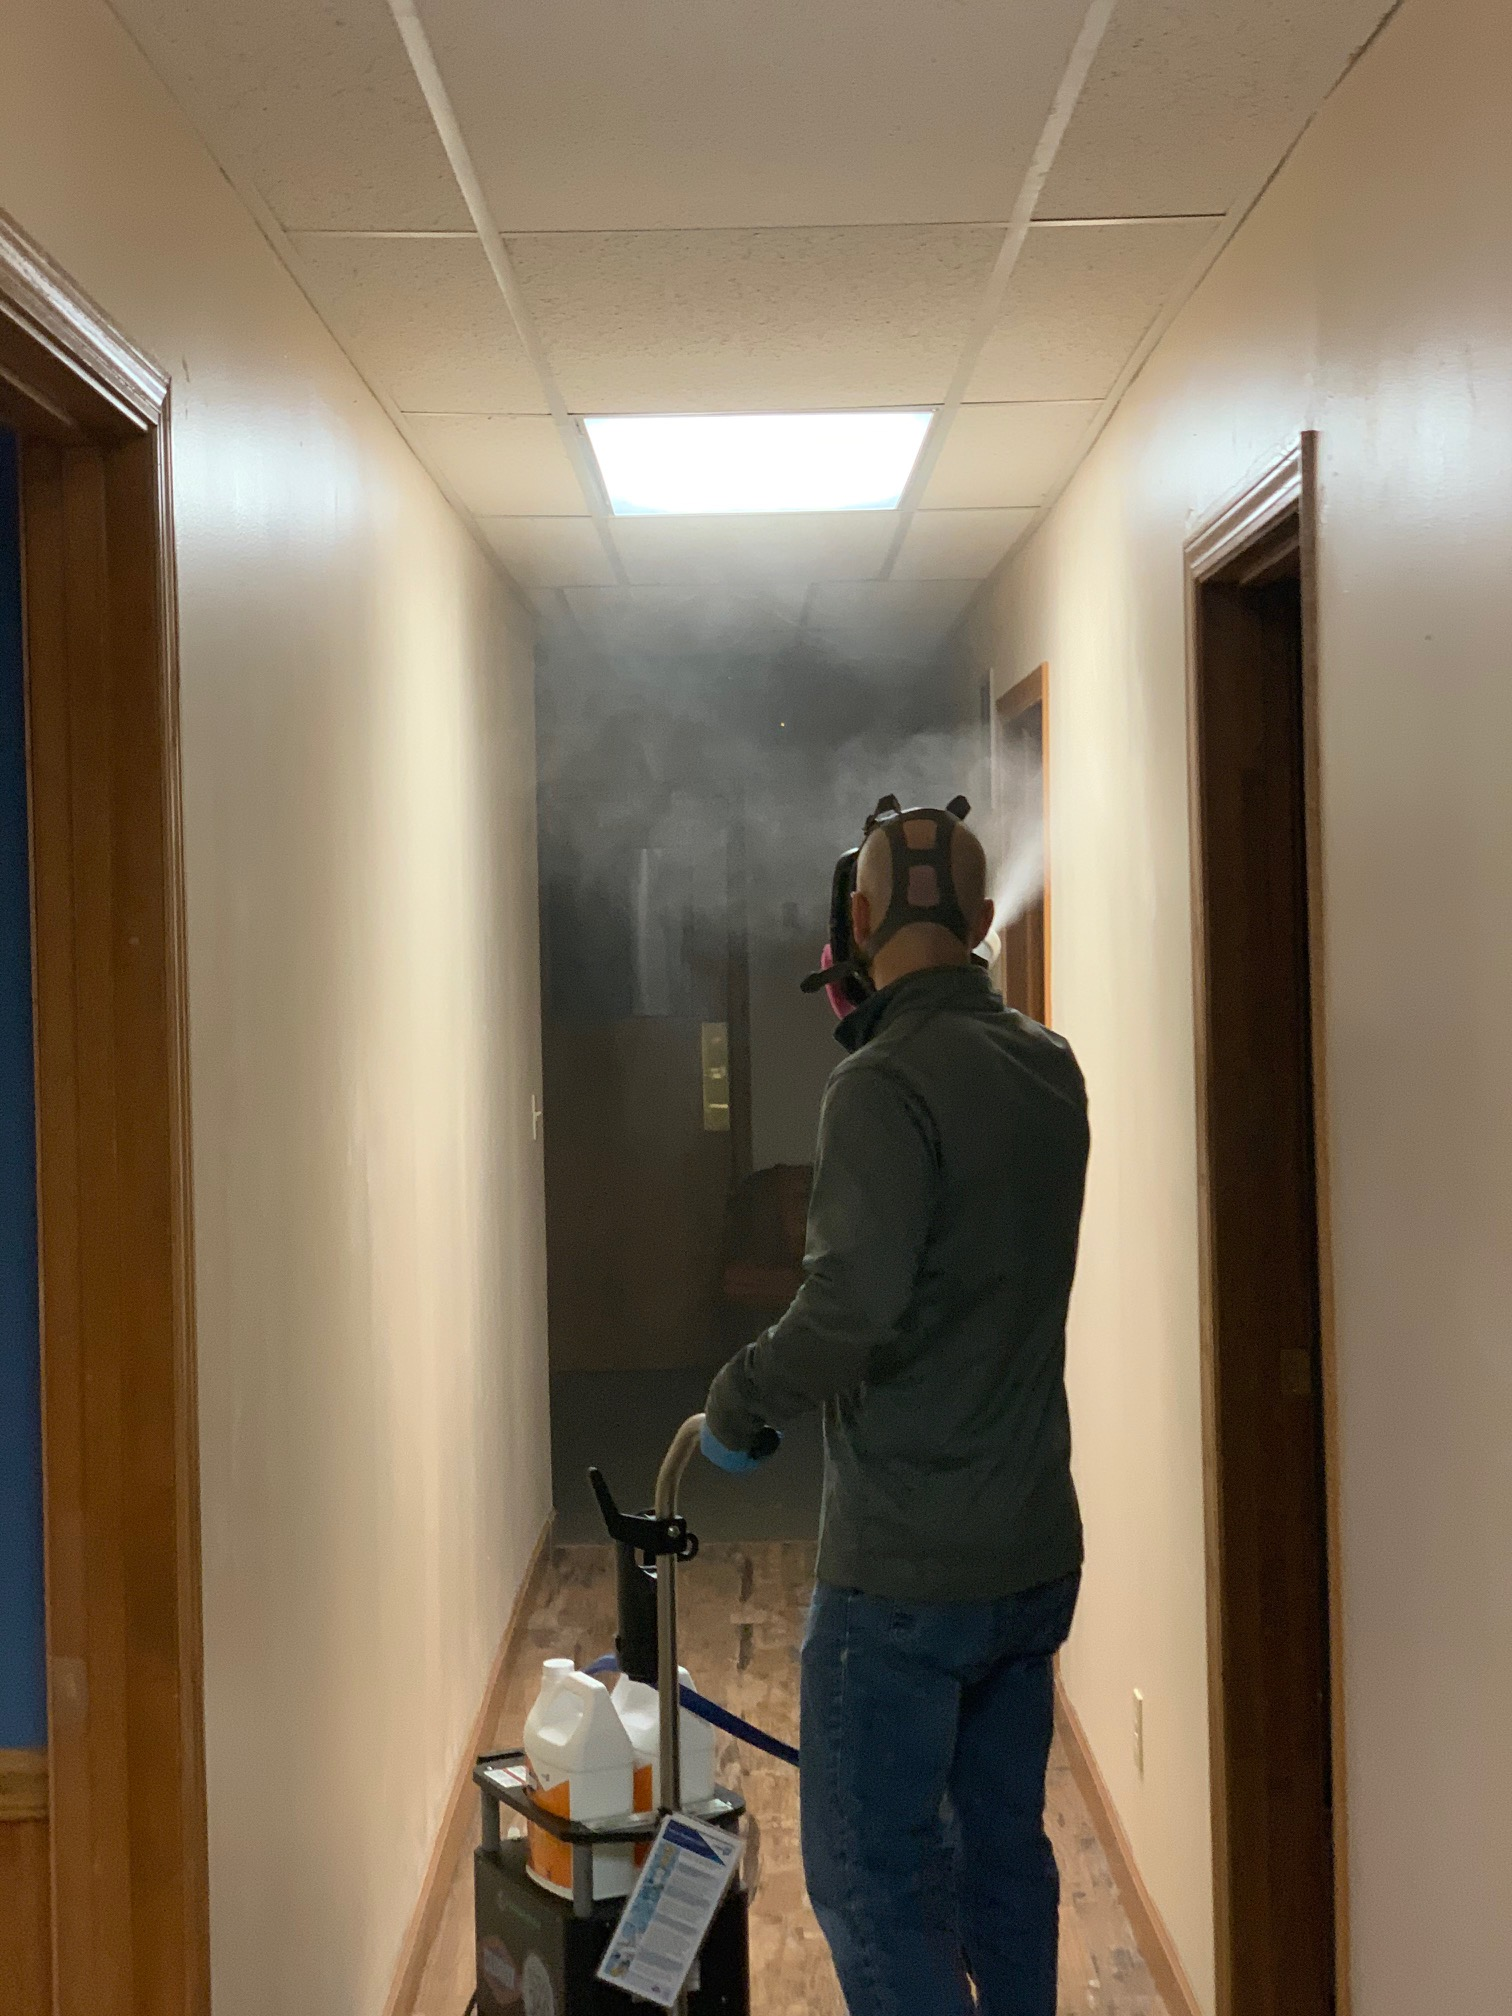 Covid-19 Disinfecting